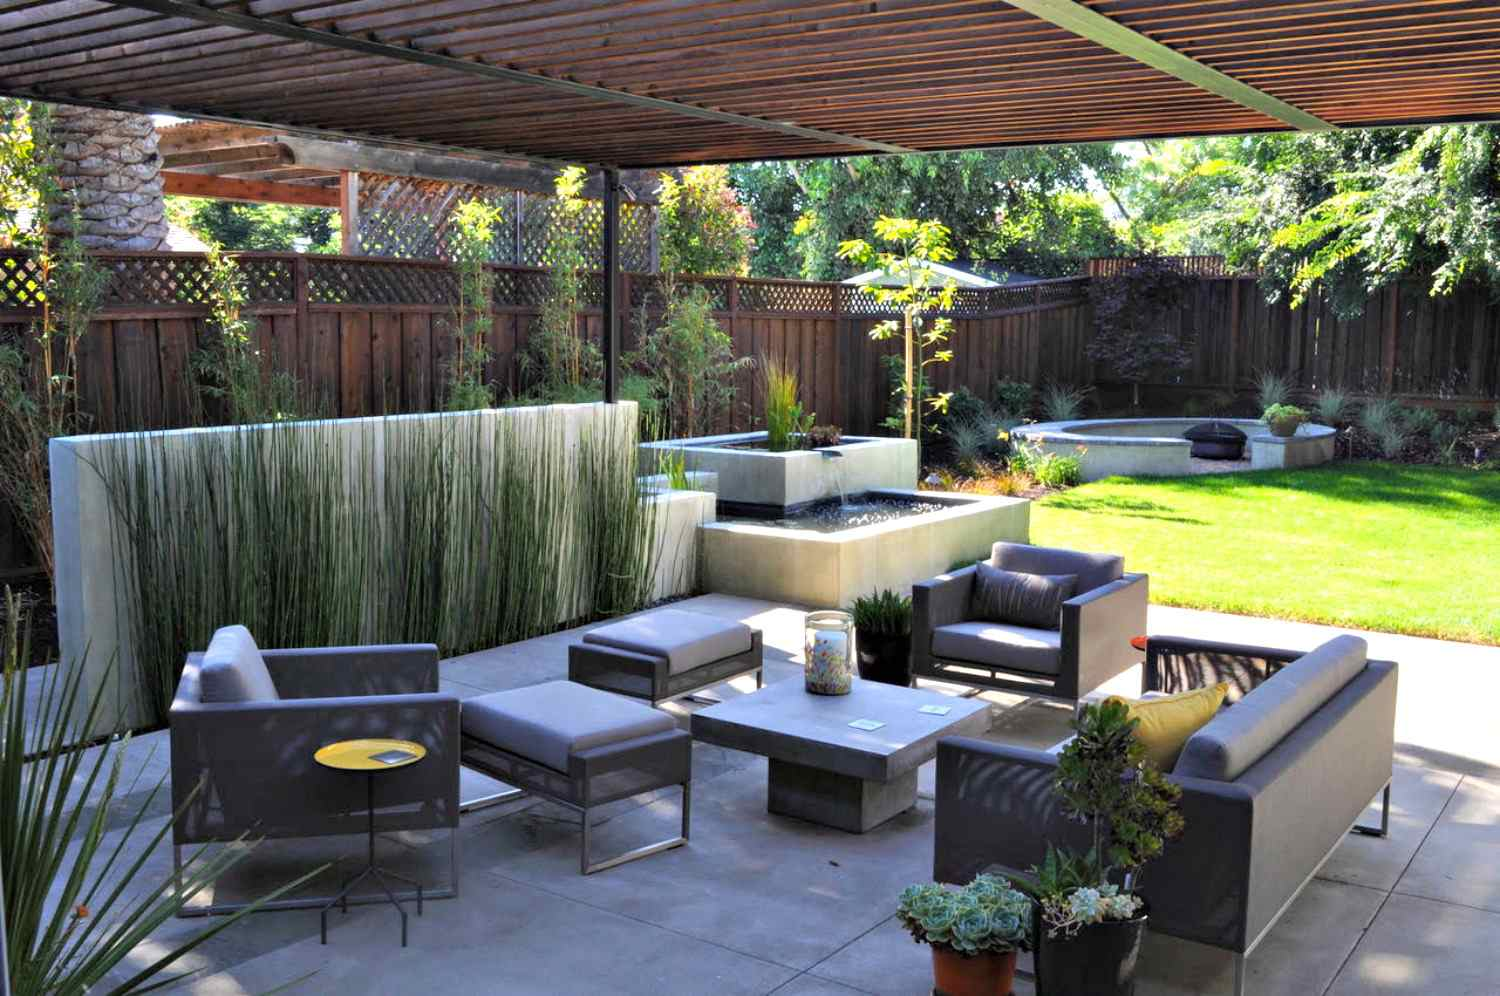 14 Modern Garden Designs and Ideas